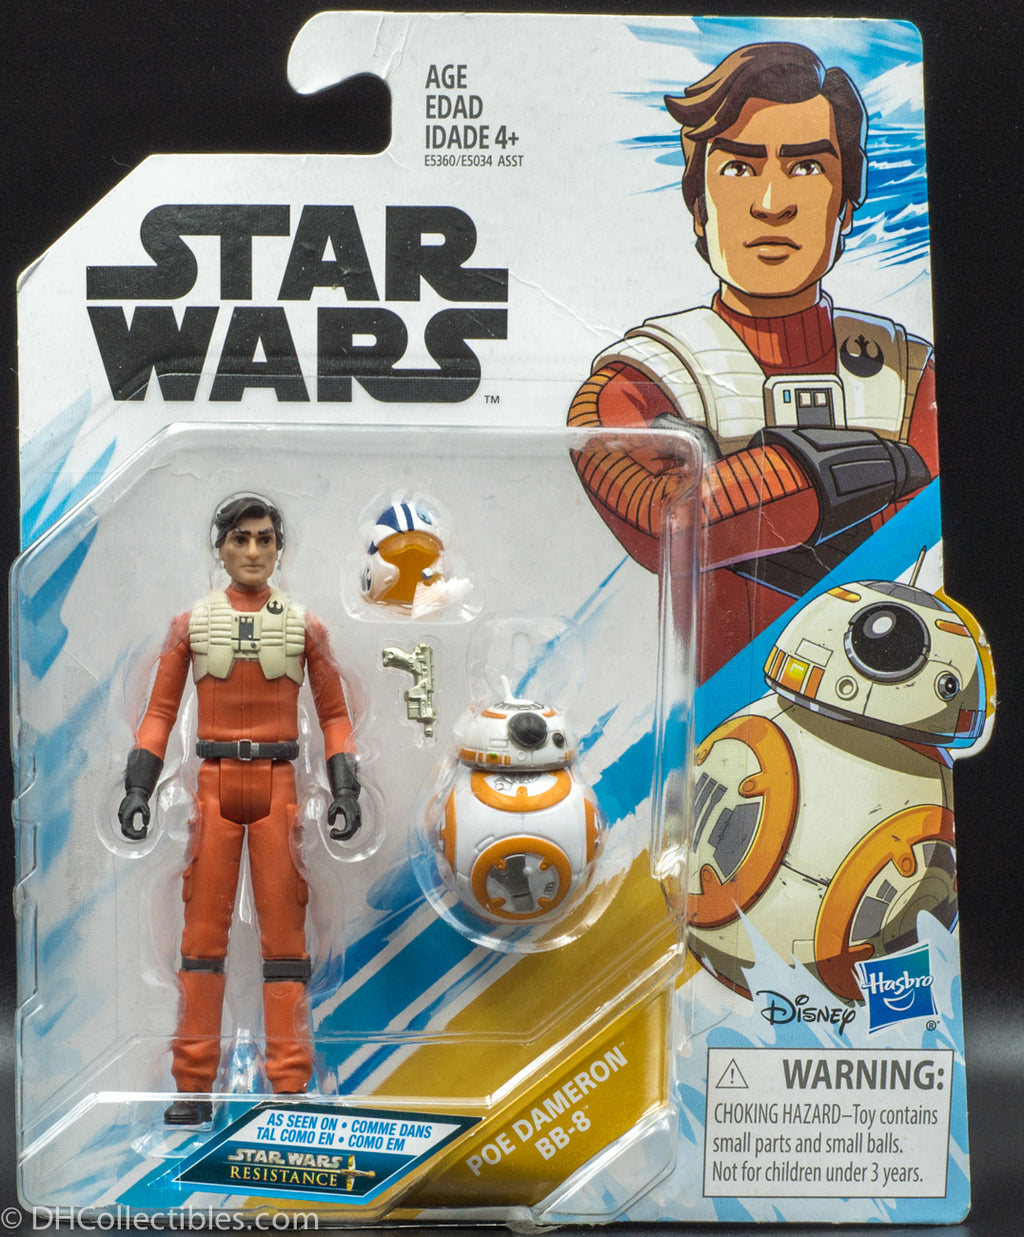 Star Wars Resistance Animated Series Poe Dameron and BB-8 - Action Figure